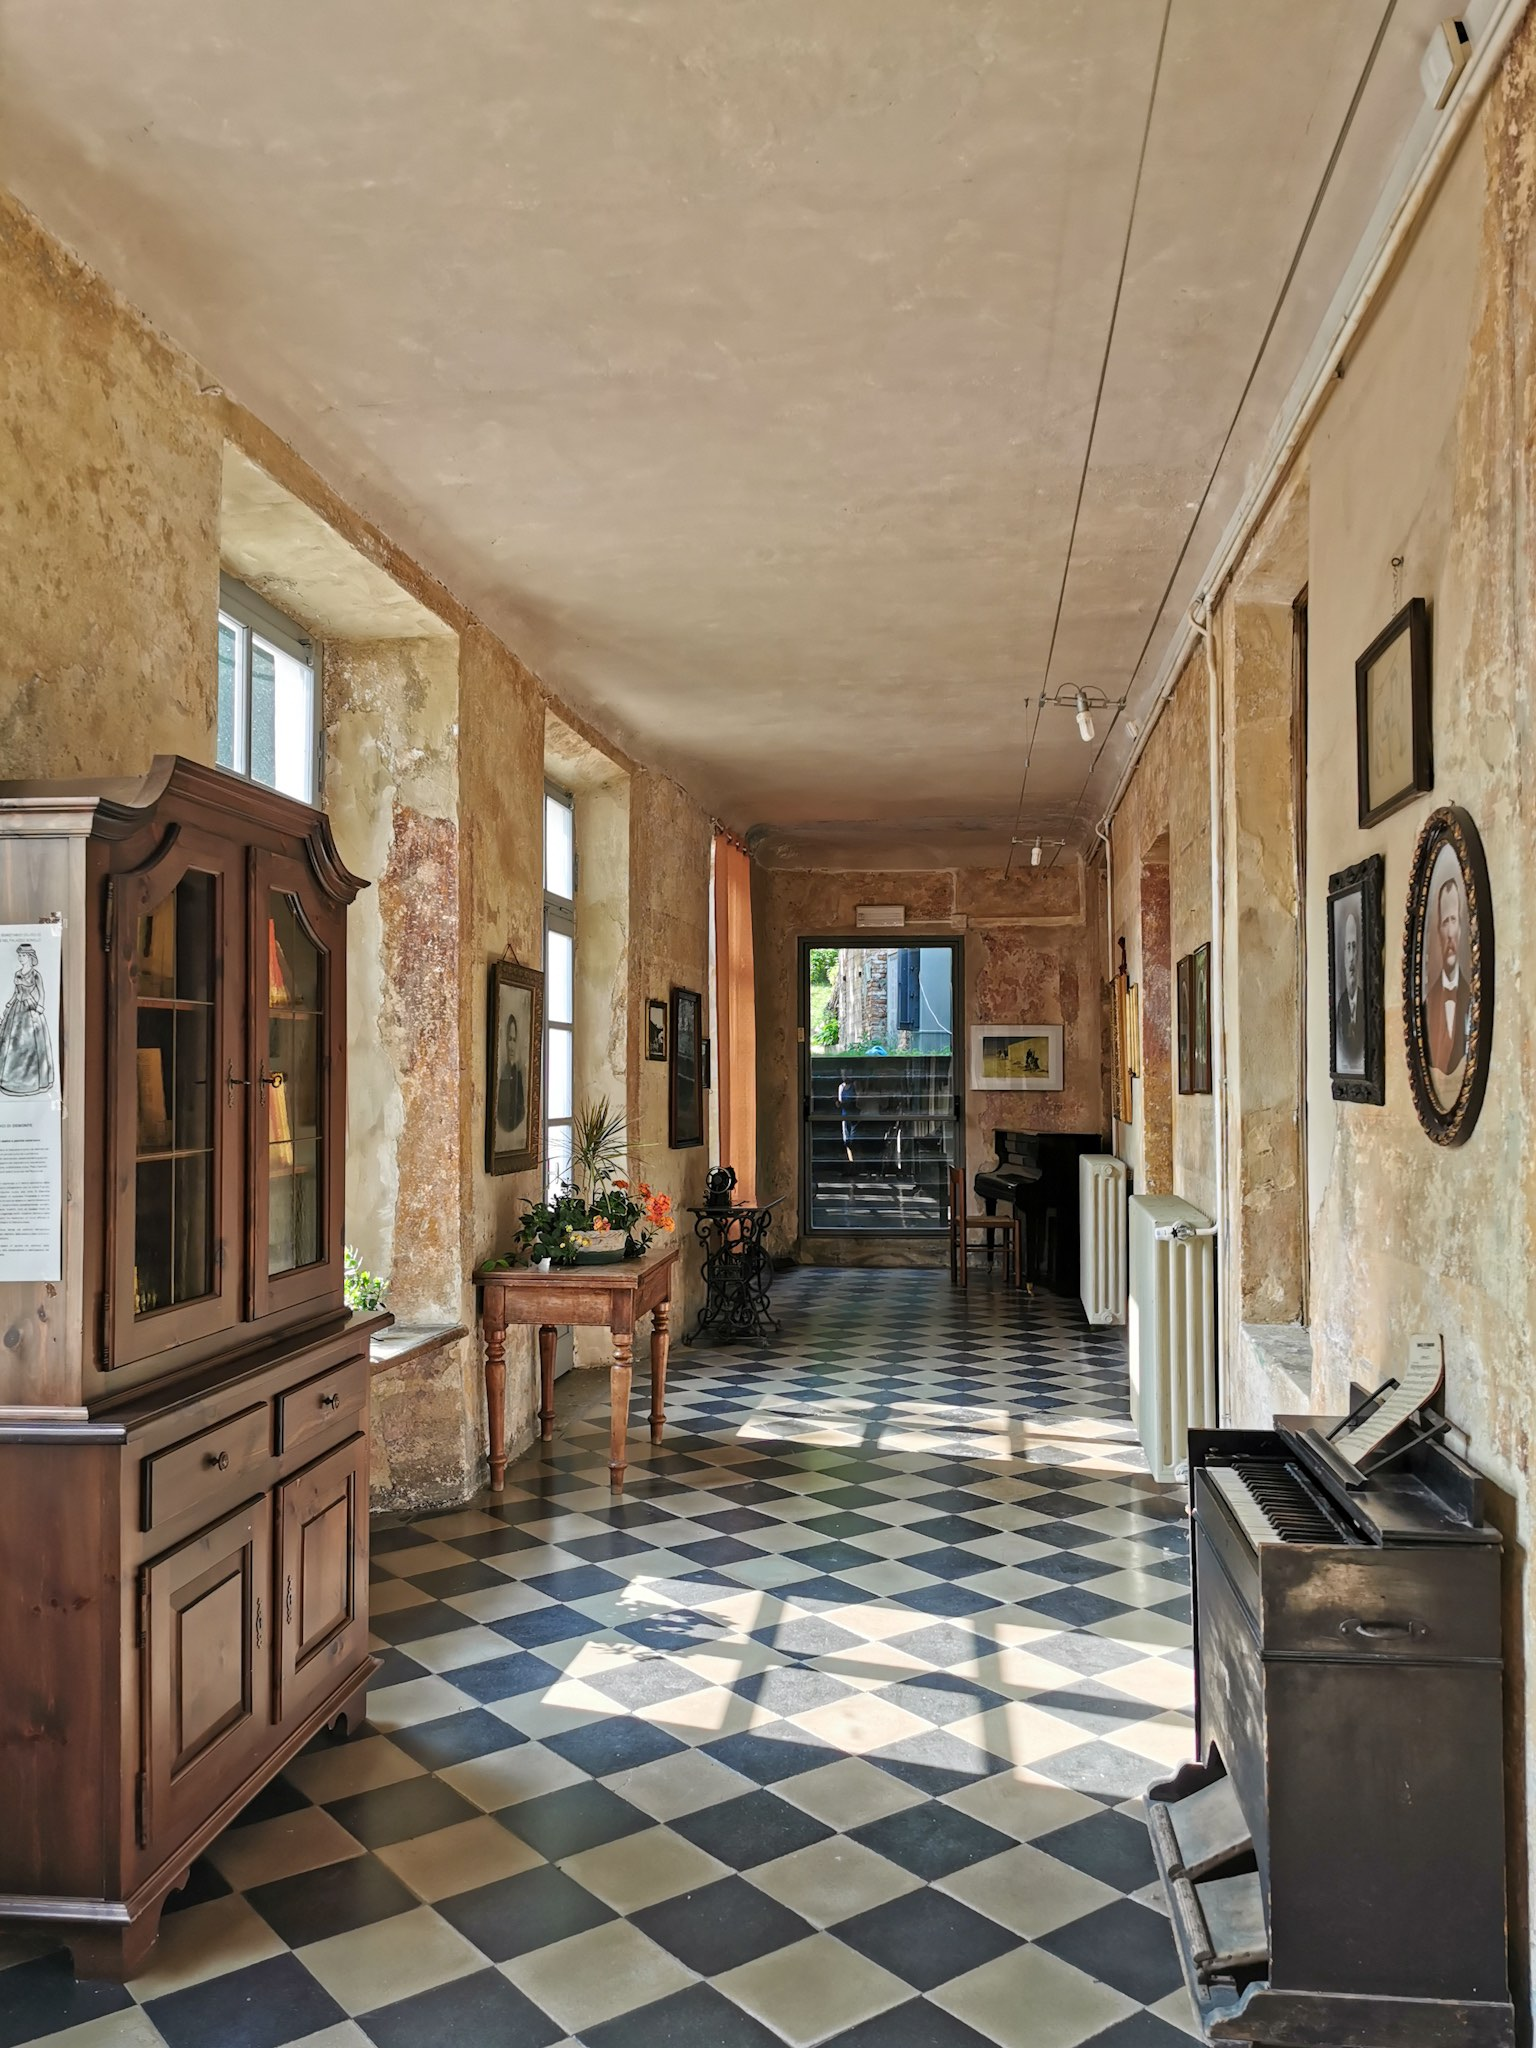 One of the corridors of Palazzo Borelli in the village of Demonte in Piedmont